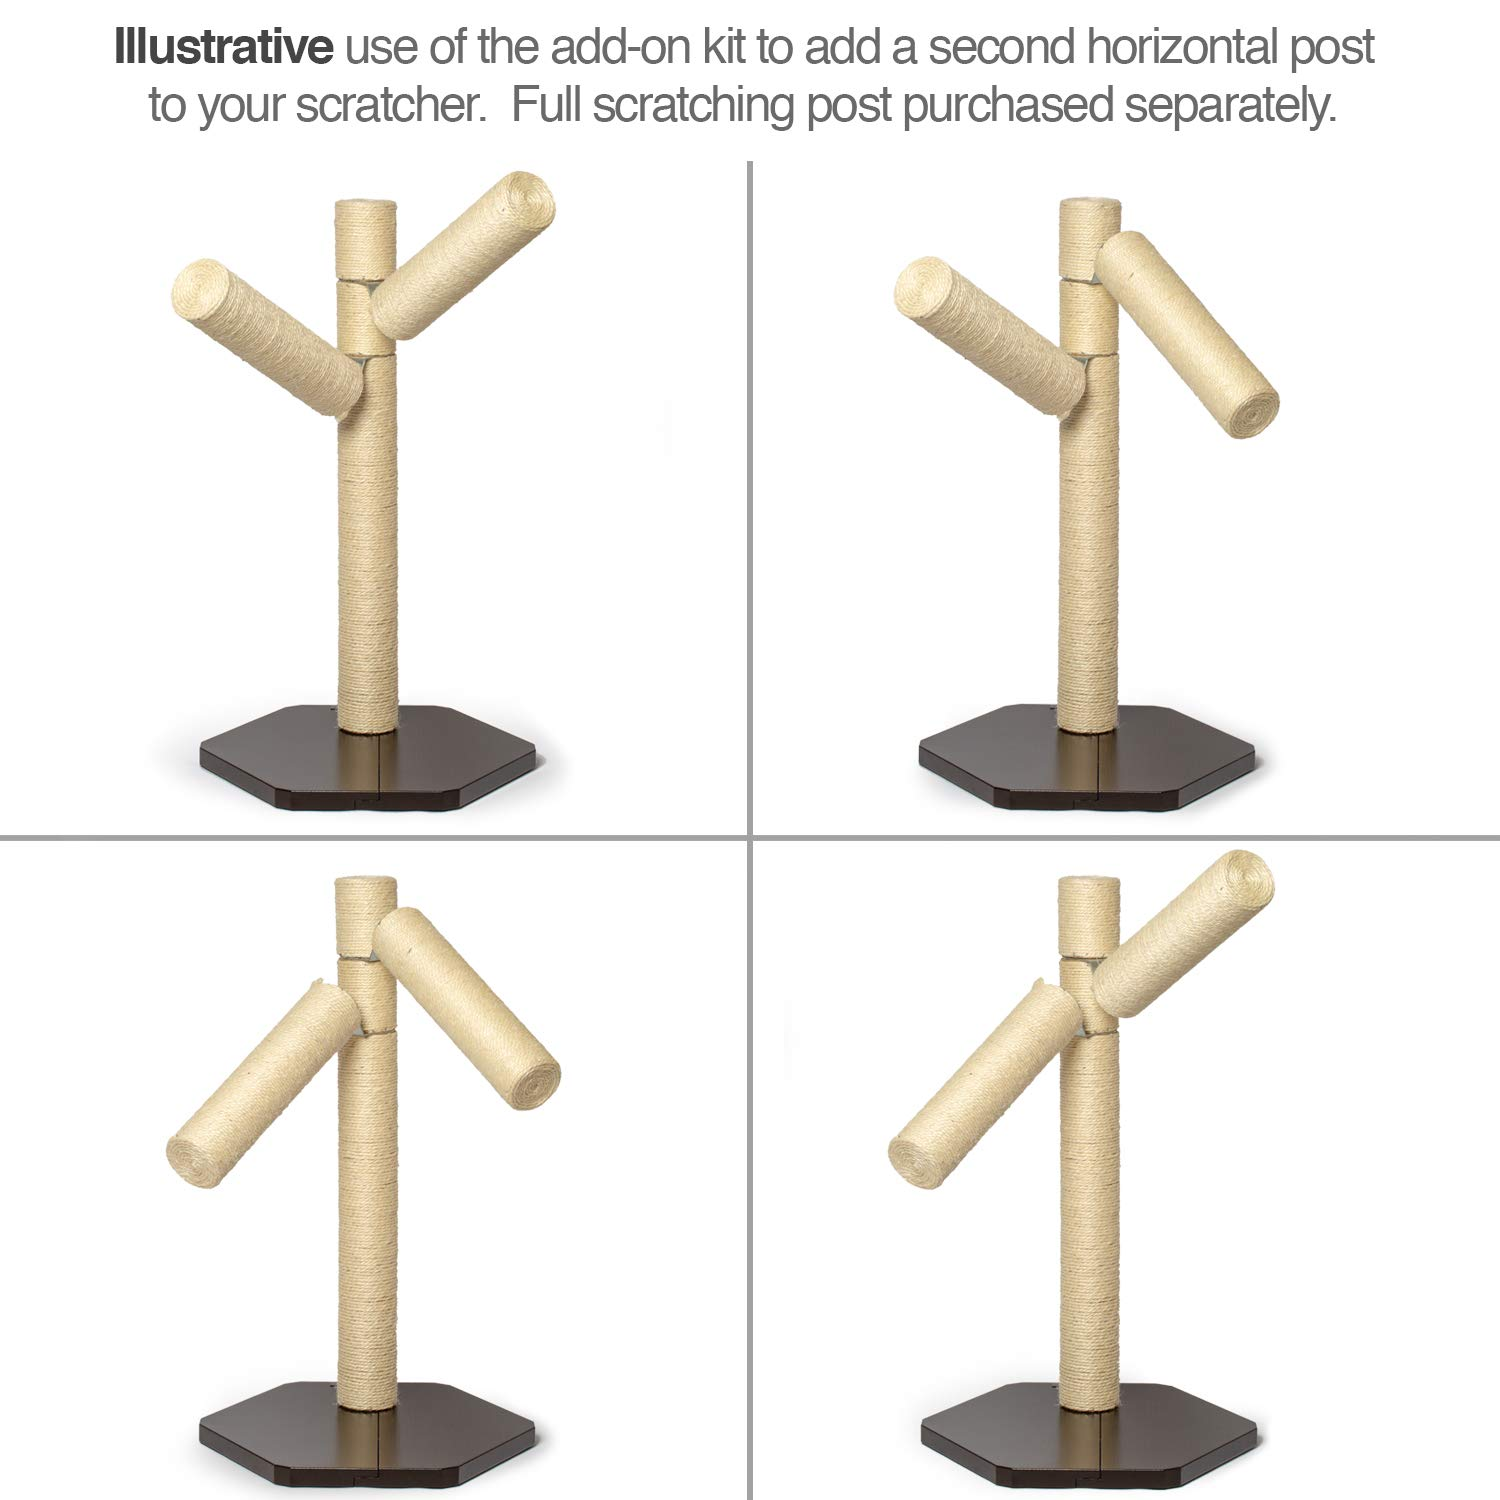 New Branch-Out Cat Scratching Post. Tall Vertical Post with Innovative Tree Branch Design. Add-on kit /& Replacement Posts Available PetFusion